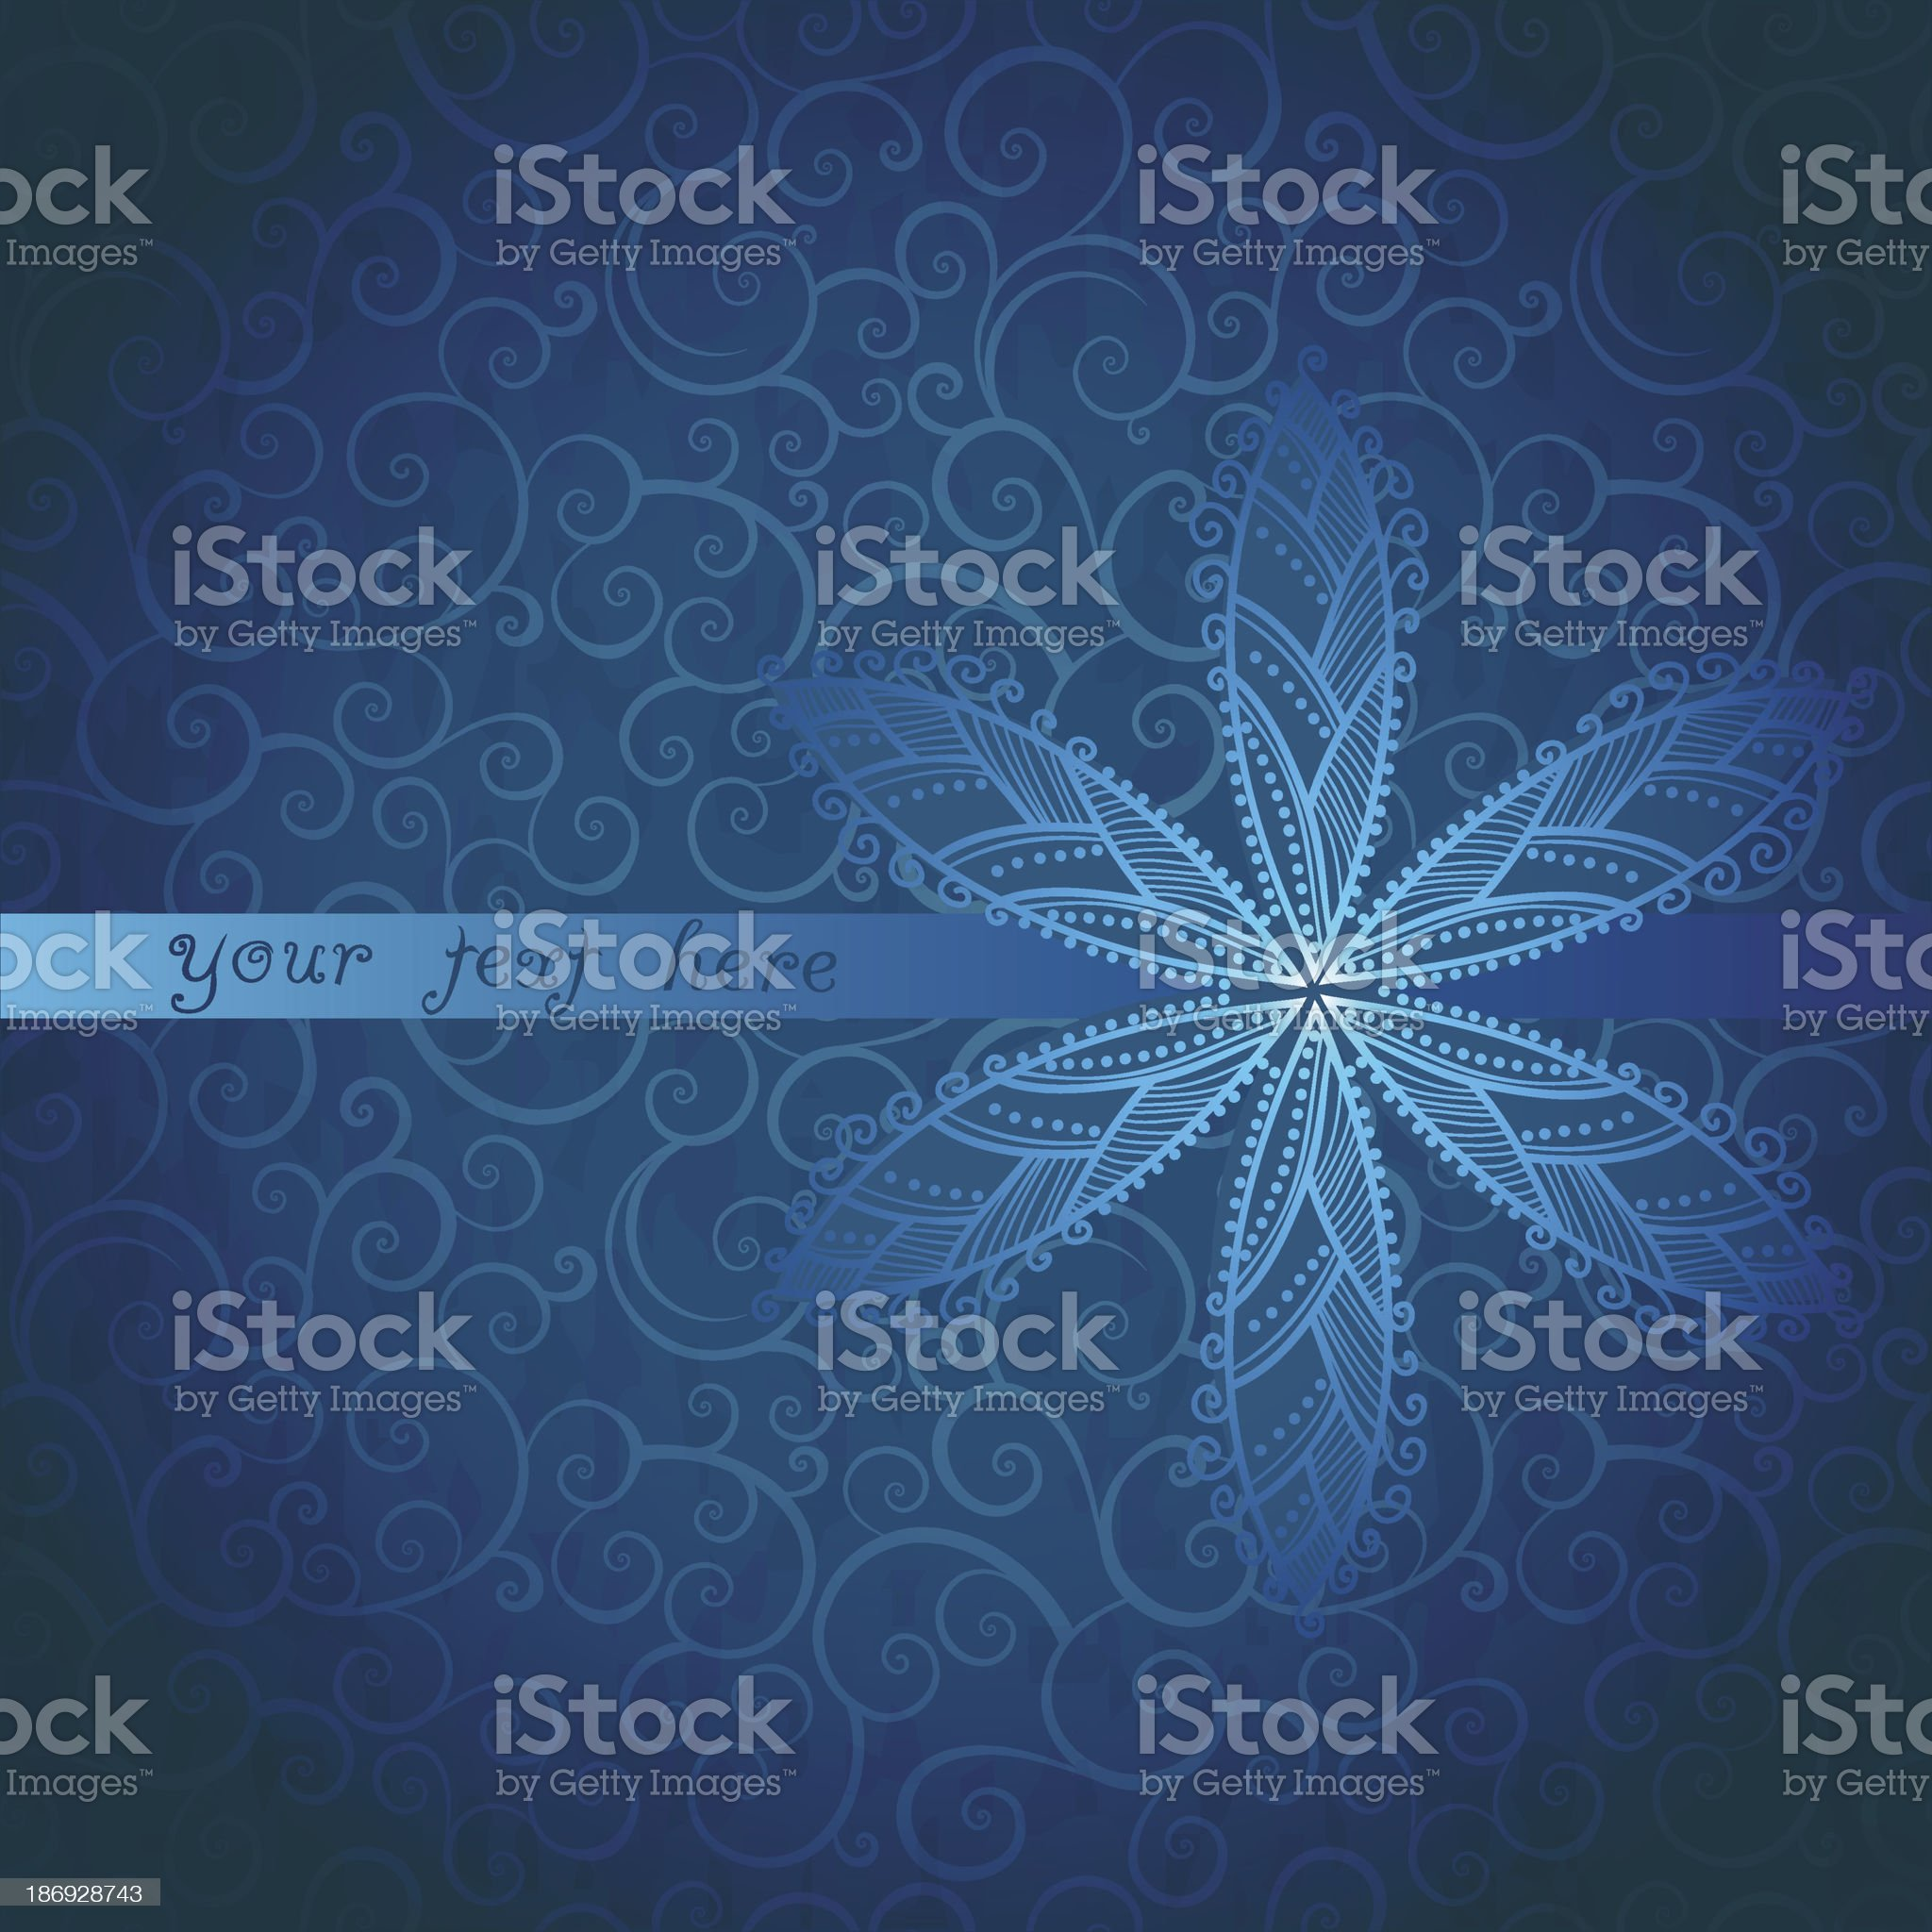 Floral greeting card with place for your text royalty-free stock vector art